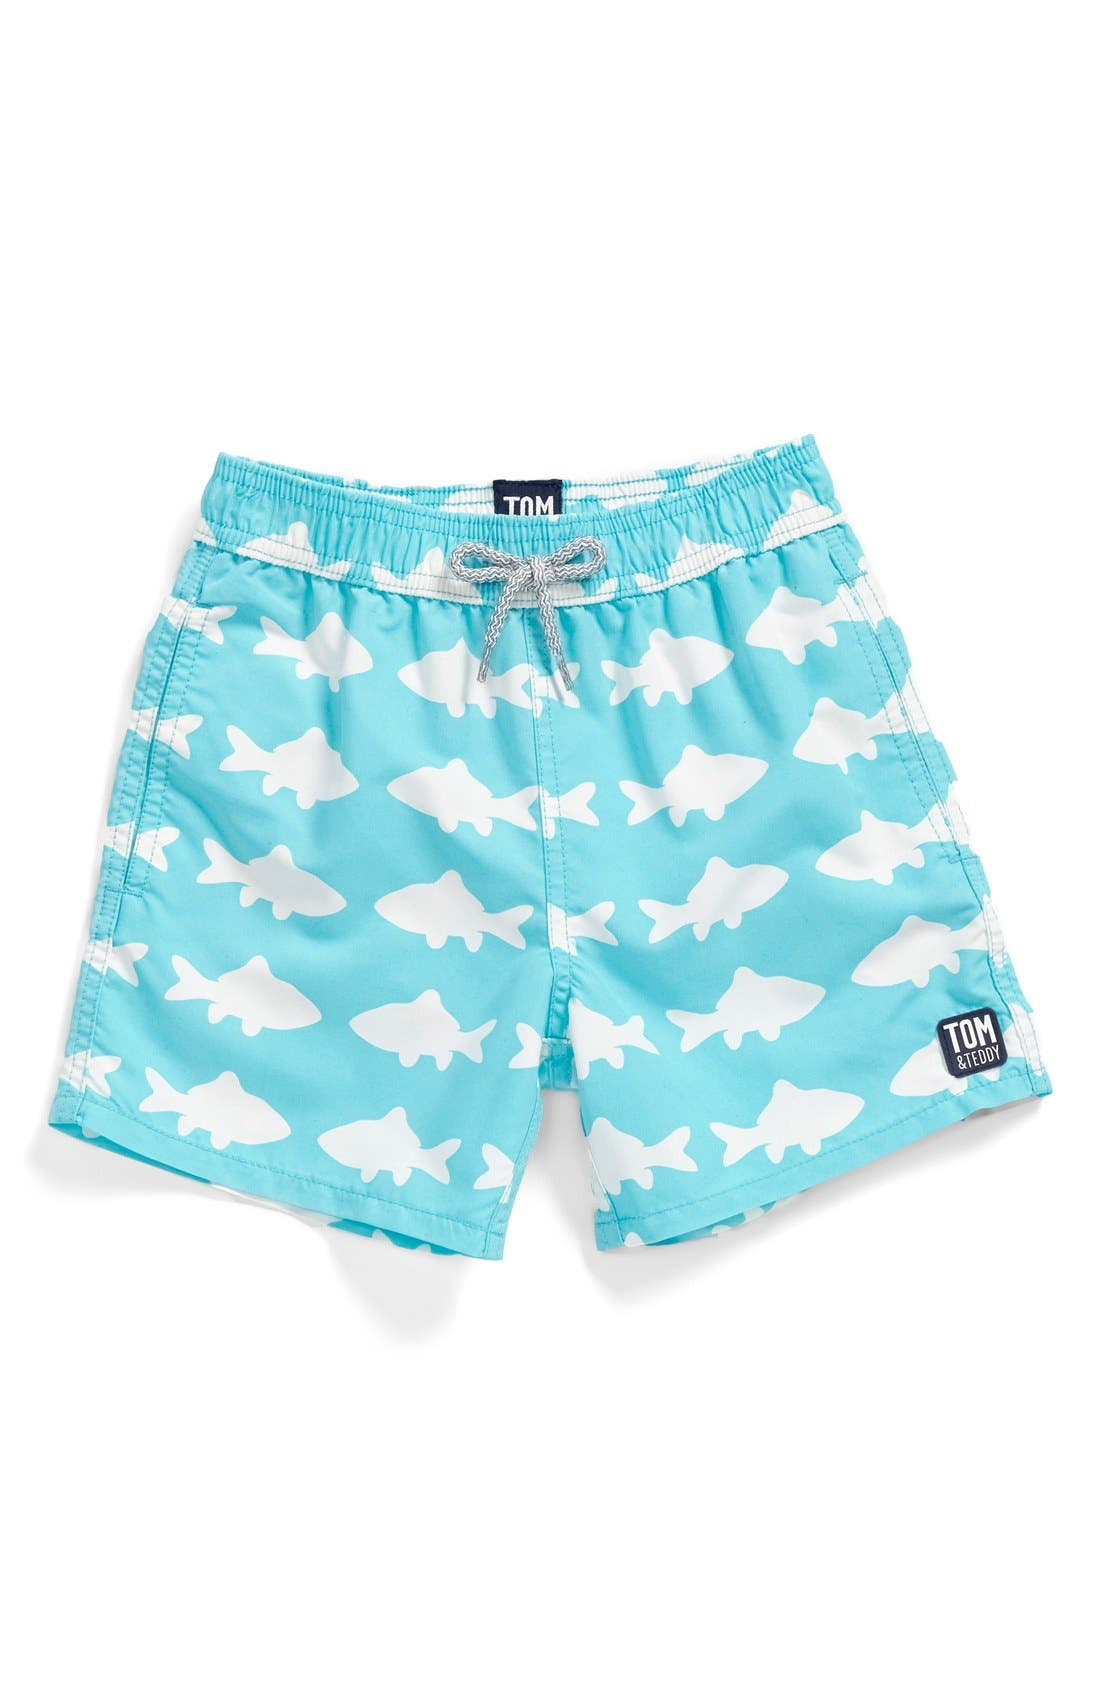 TOM & TEDDY 'Fish Pattern' Swim Trunks